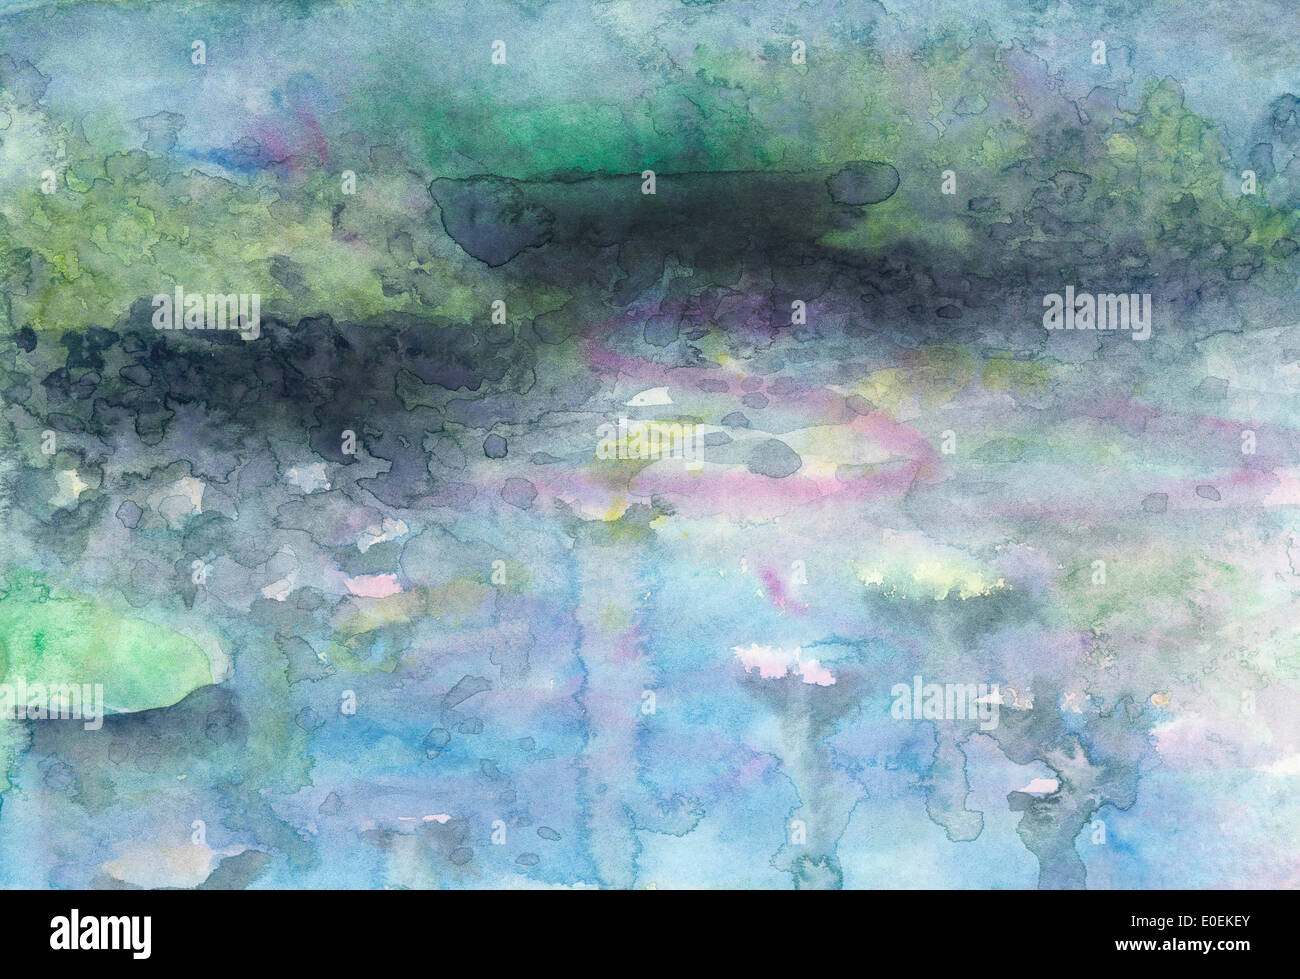 Waterlily pond. Watercolor landscape pond with waterlilies. - Stock Image